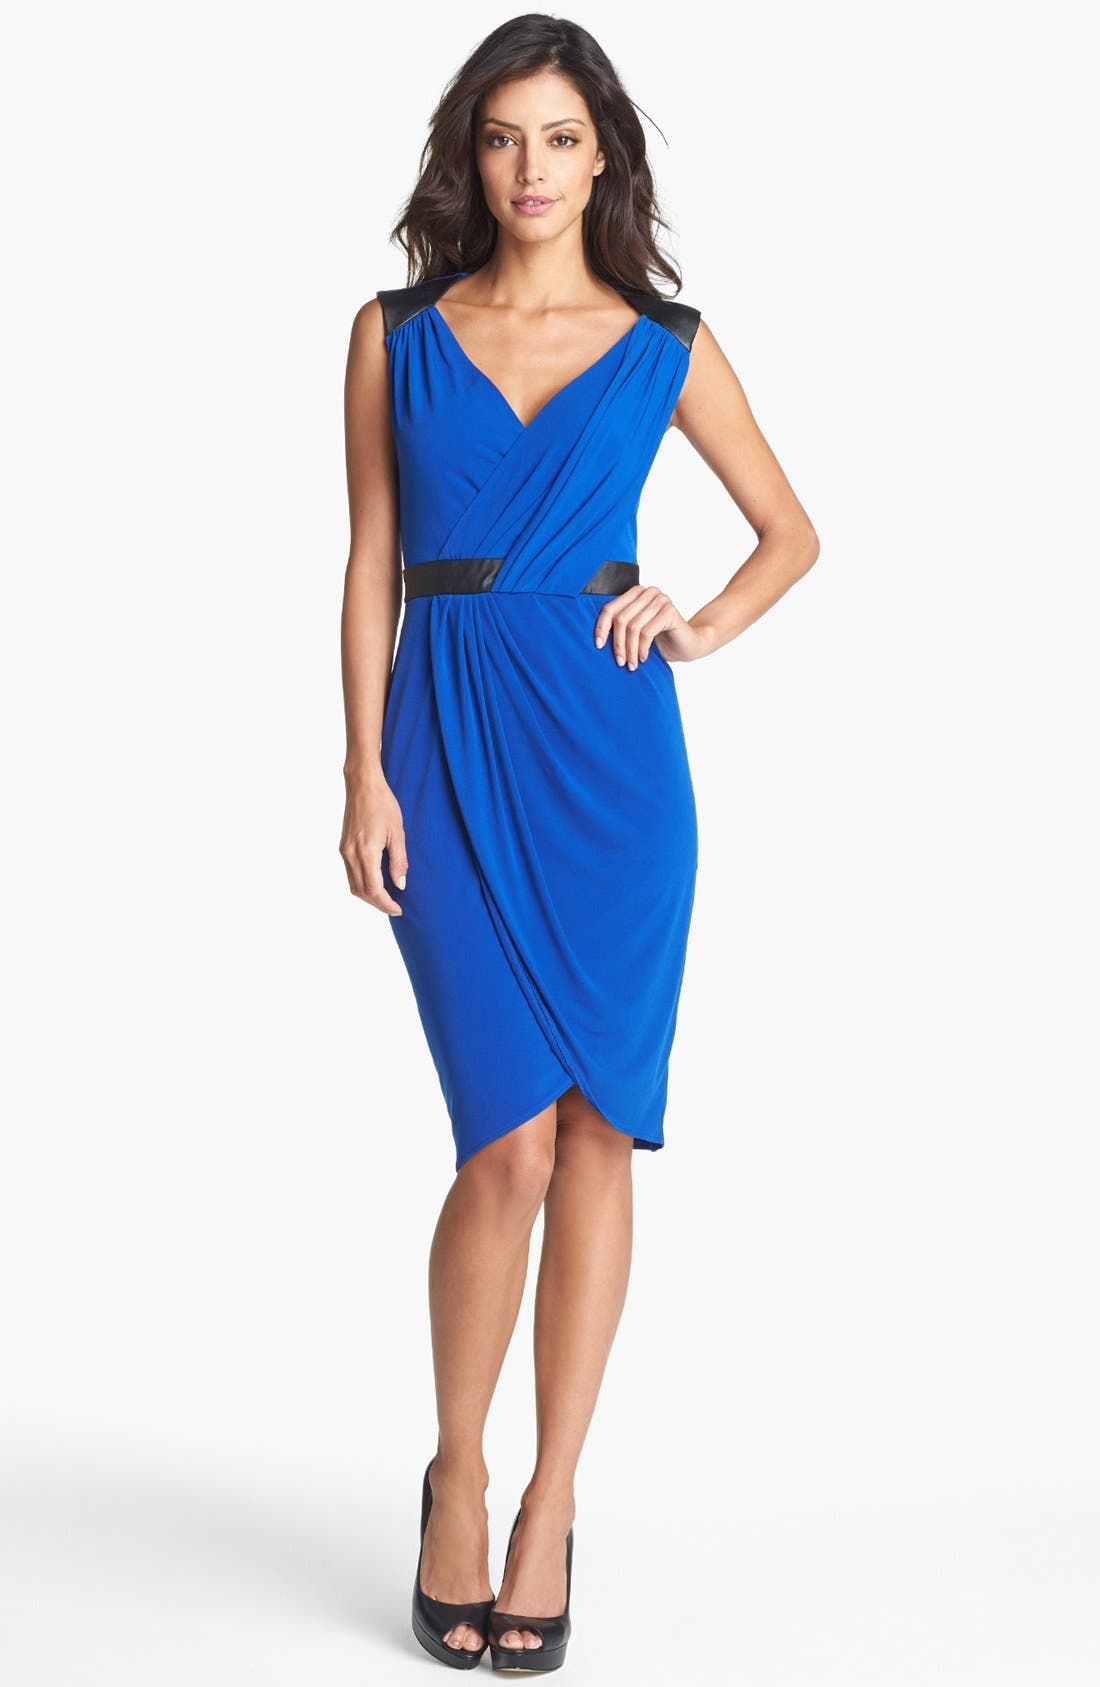 Main Image - Ivy & Blu Faux Leather Trim Dress